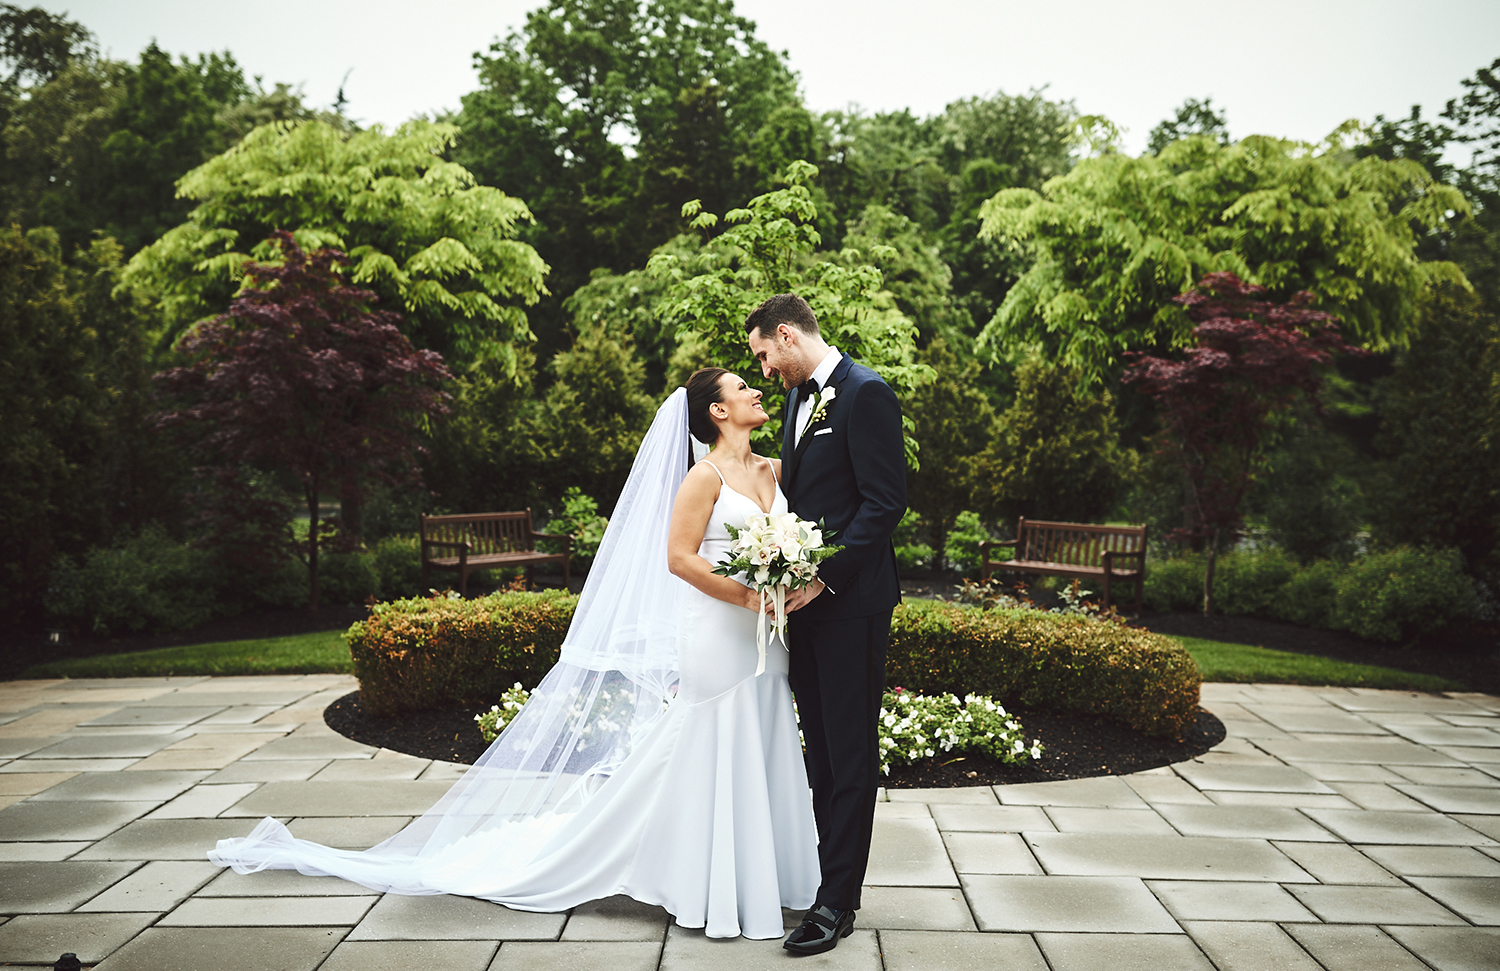 180519_PalaceatSomersetParkWeddingPhotography_NJWeddingPhotographer_By_BriJohnsonWeddings_0001.jpg